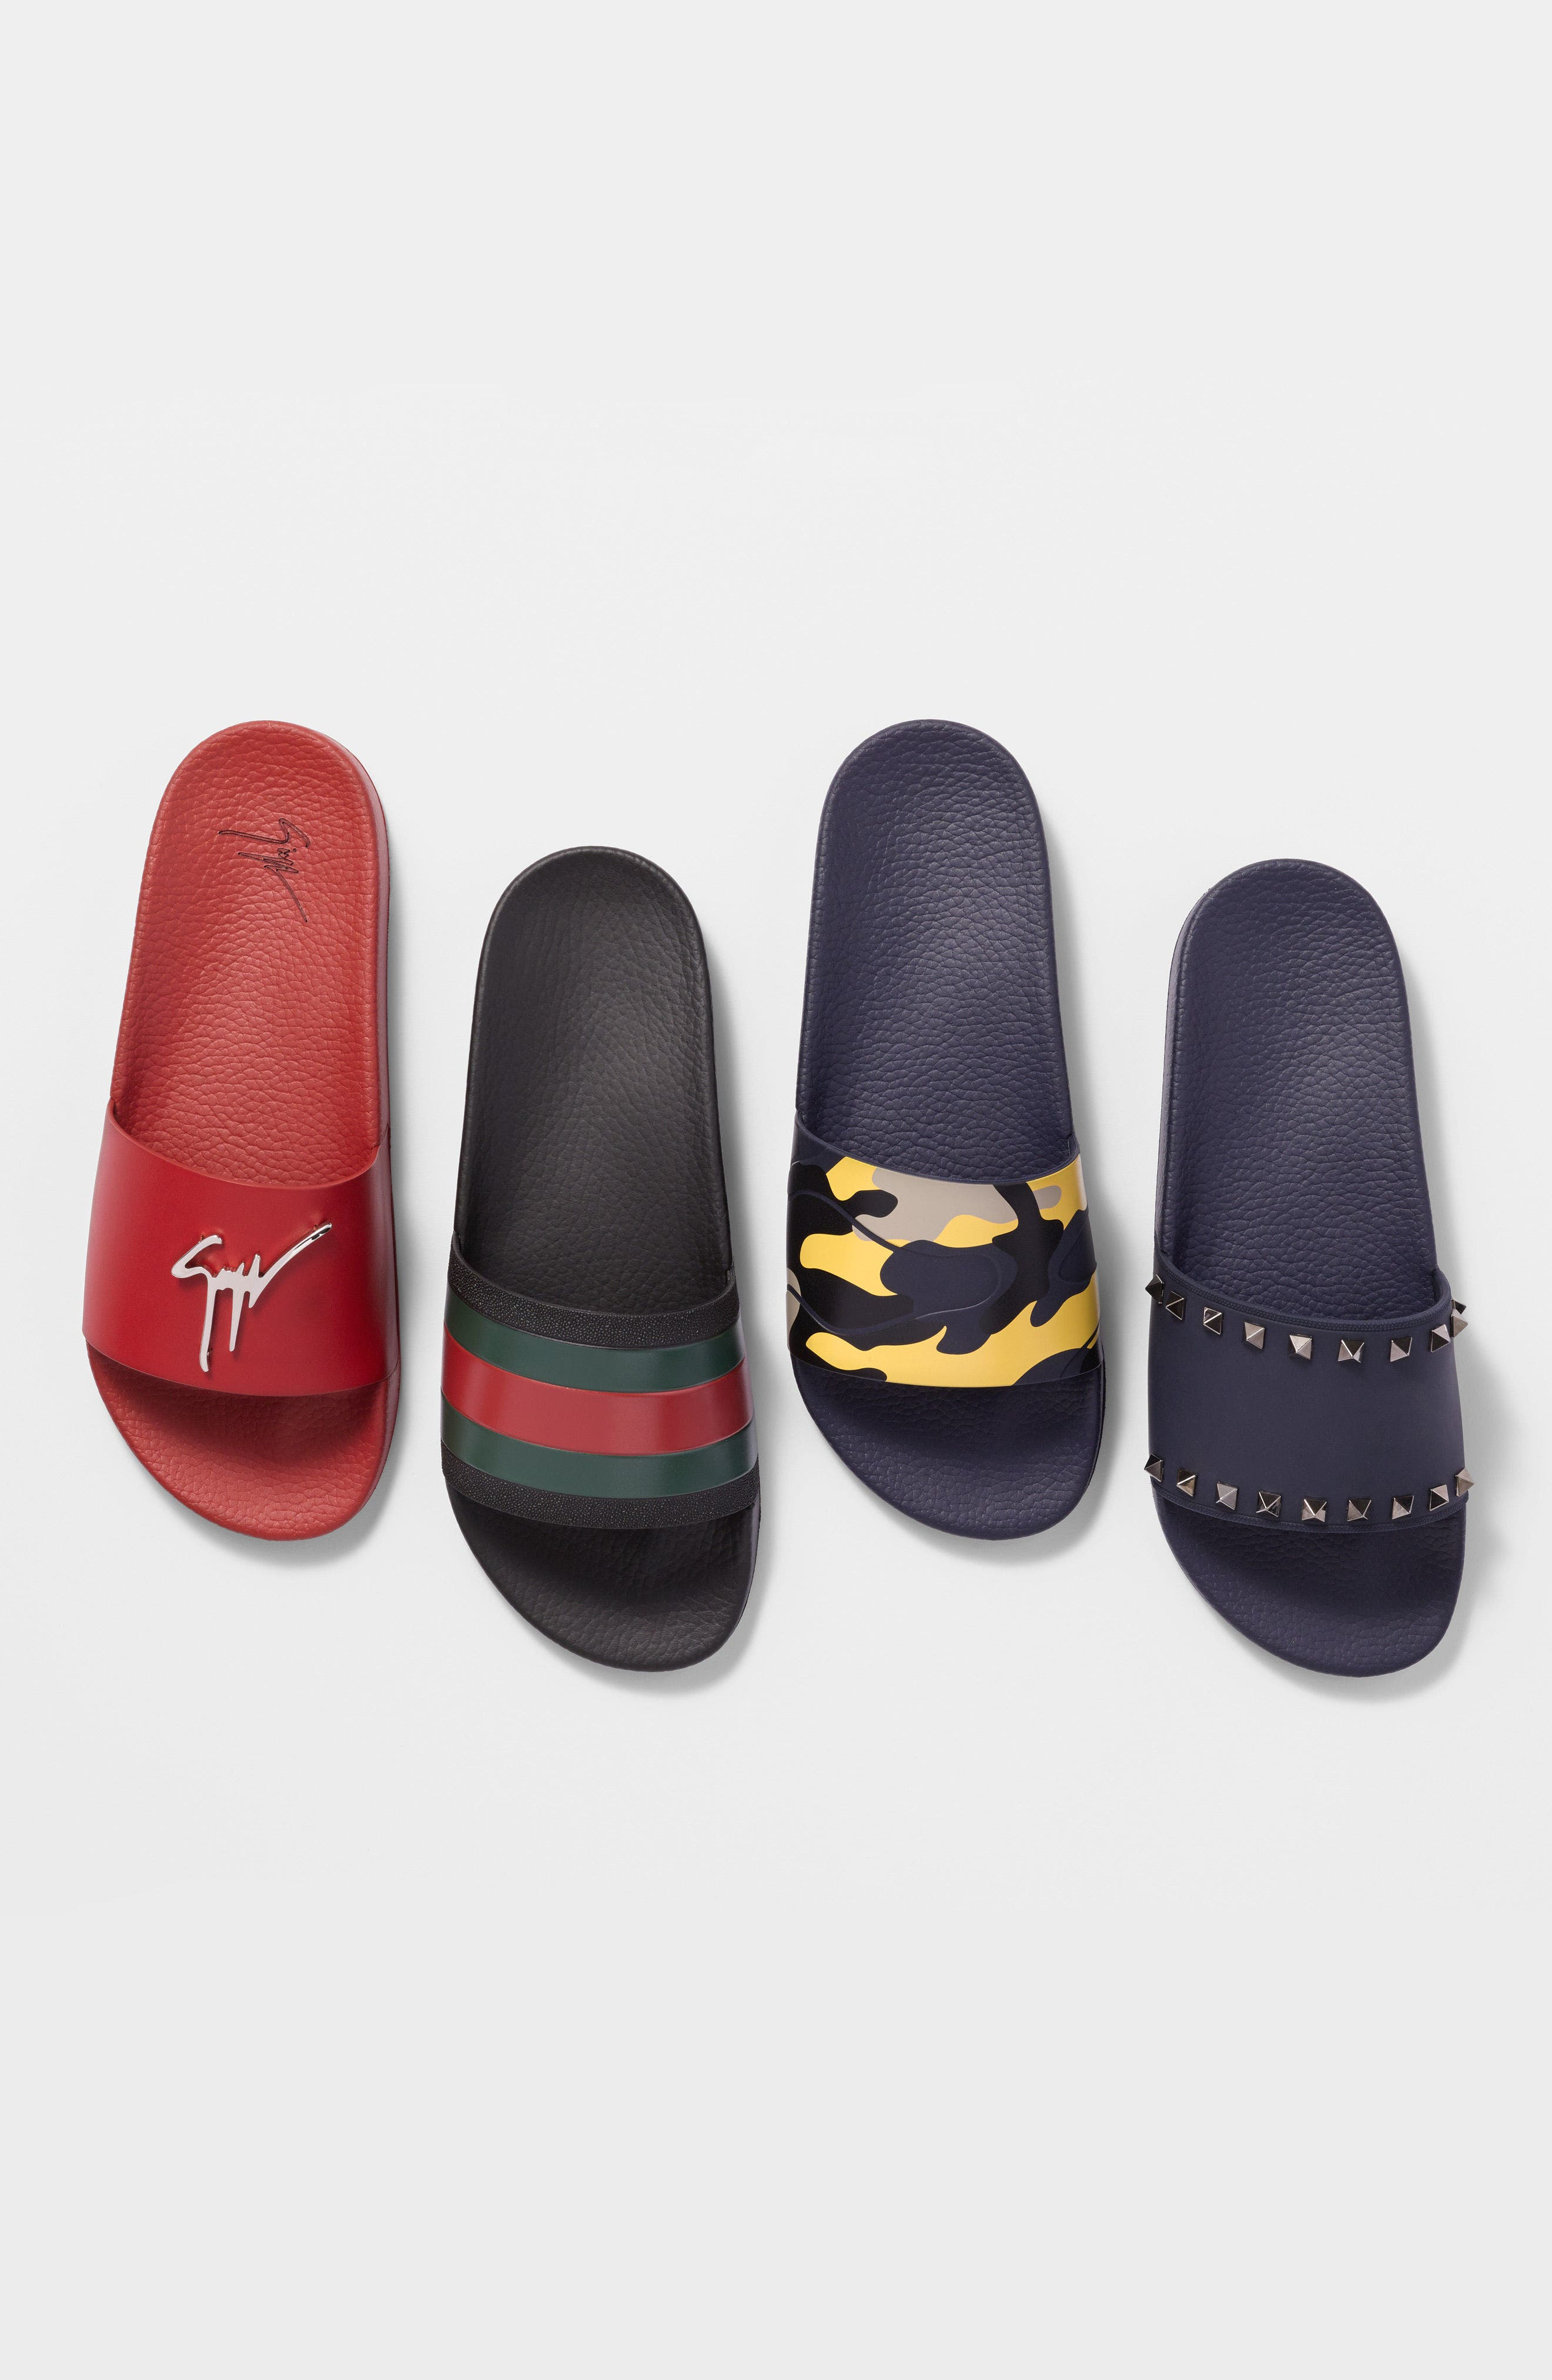 Slide Sandal,                             Main thumbnail 1, color,                             335